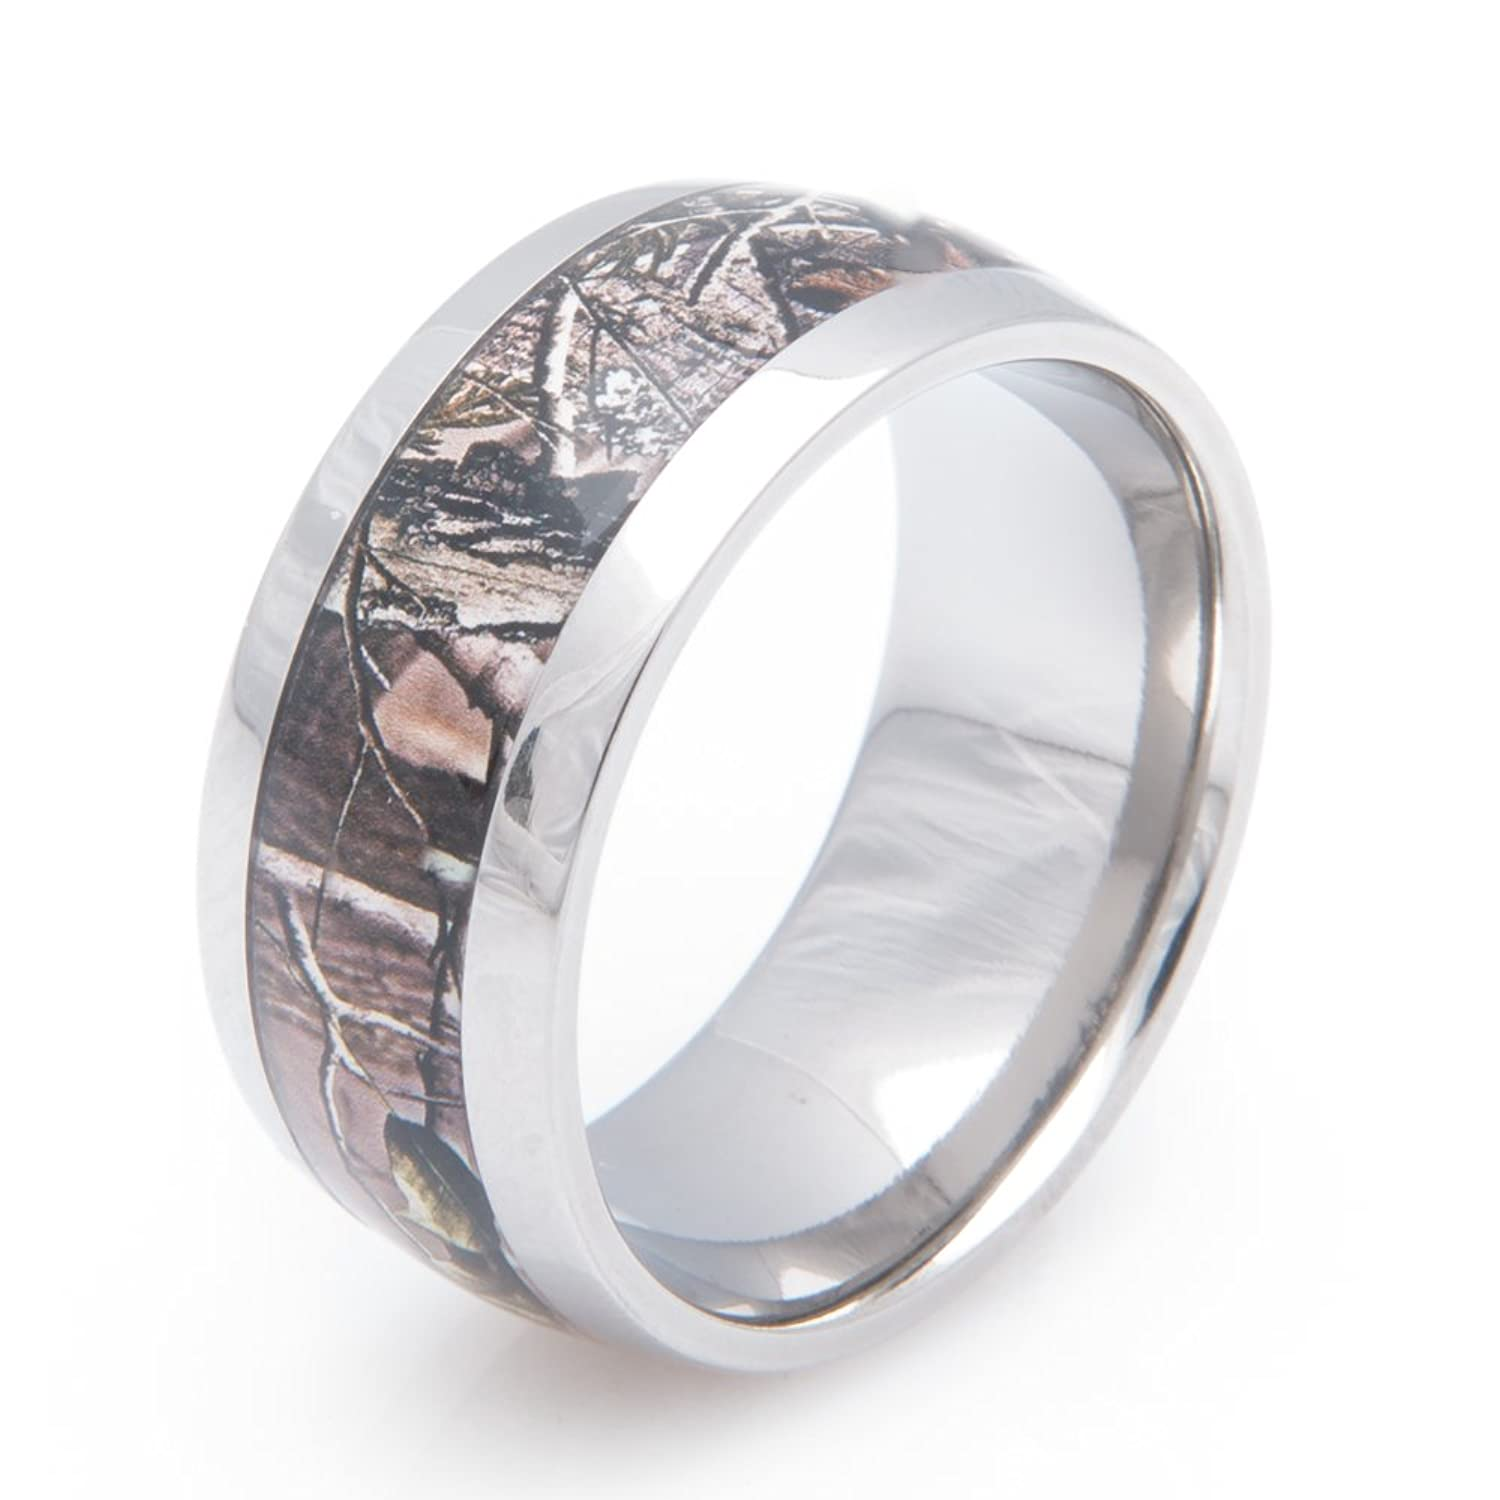 Titanium Realtree APG Camo Ring 10mm fort Fit